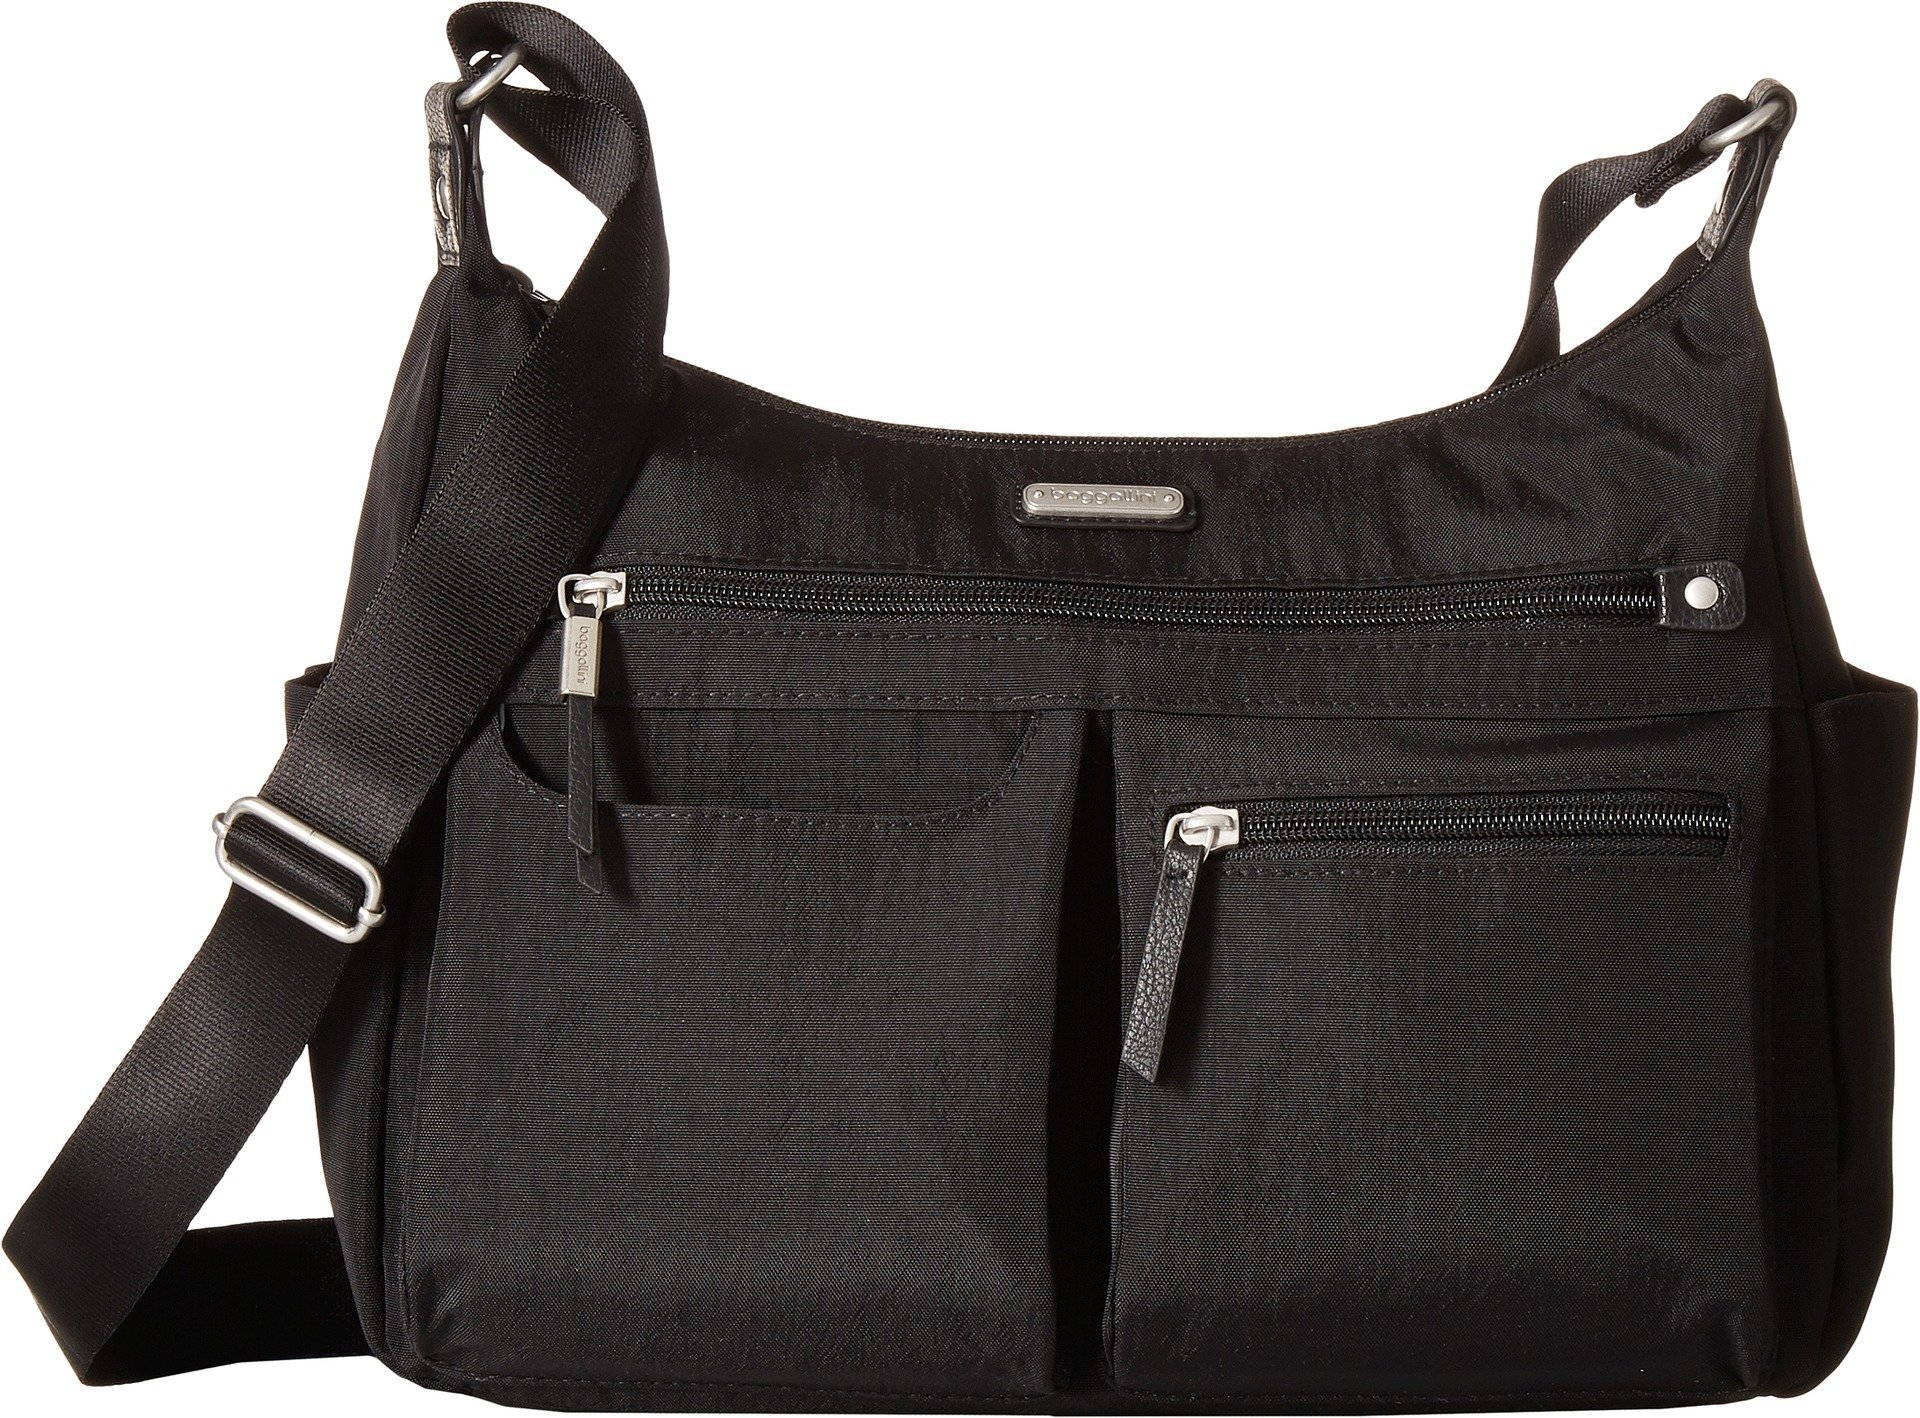 Baggallini Women's New Classic''Heritage'' Anywhere Large Hobo with RFID Phone Wristlet Black One Size by Baggallini